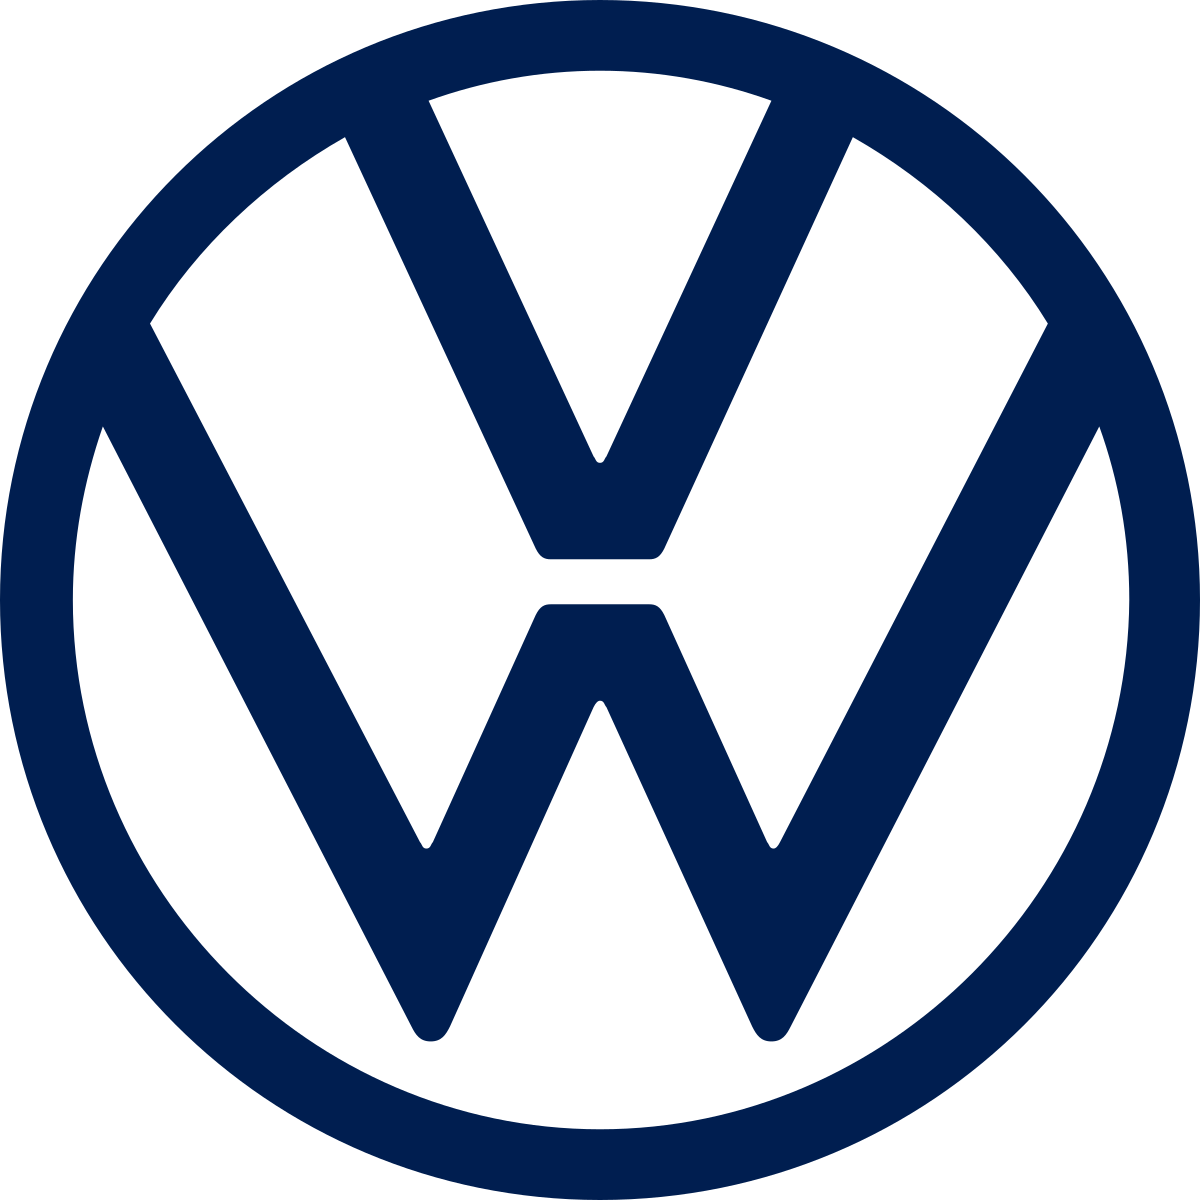 VW shows confidence in electric future with higher margin goal